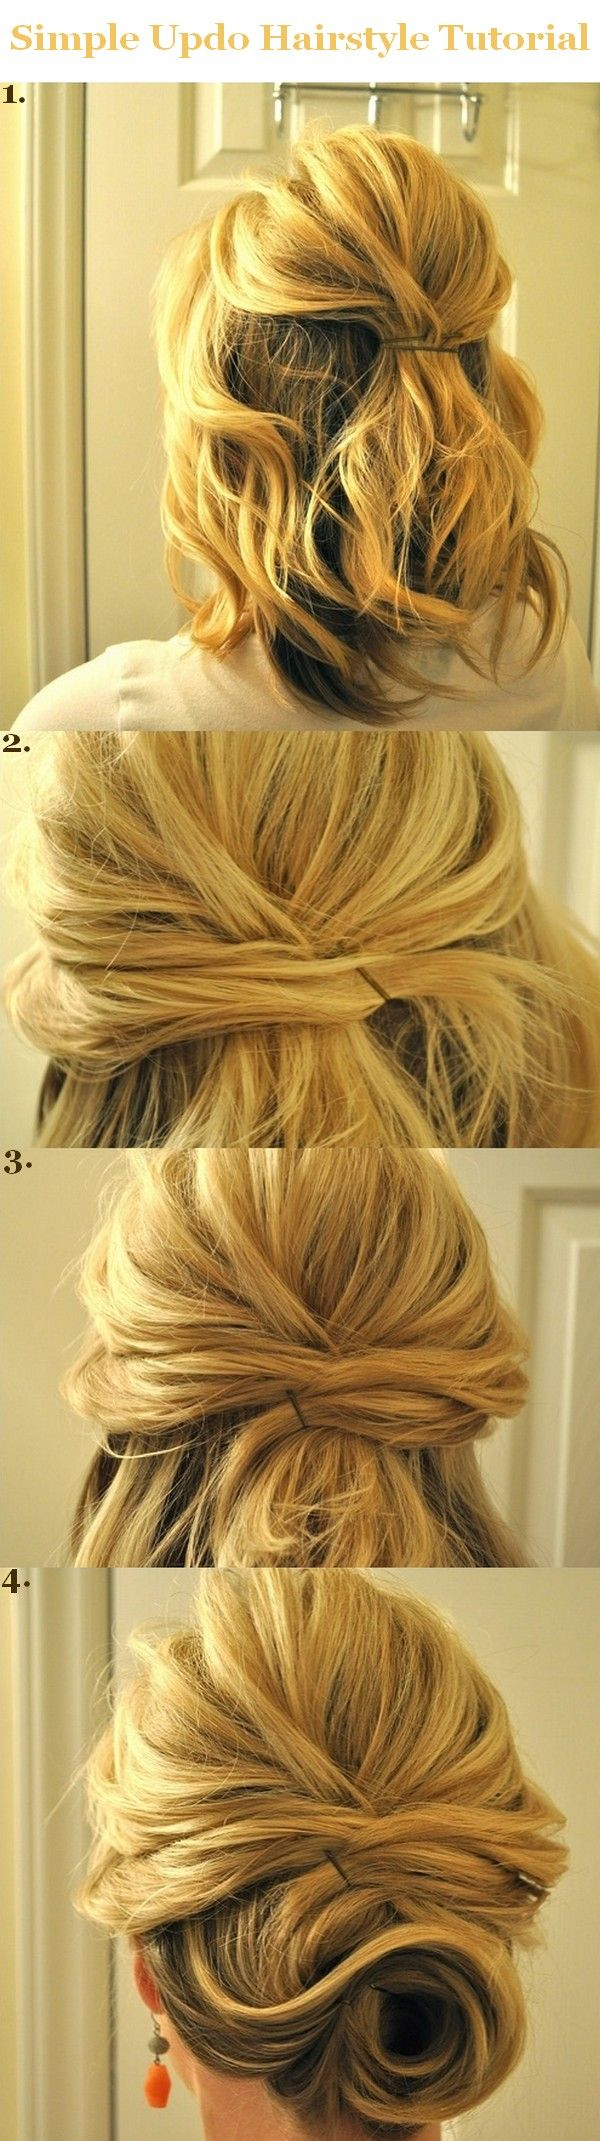 Simple updo hairstyle tutorial laurel wypkema wypkema wypkema